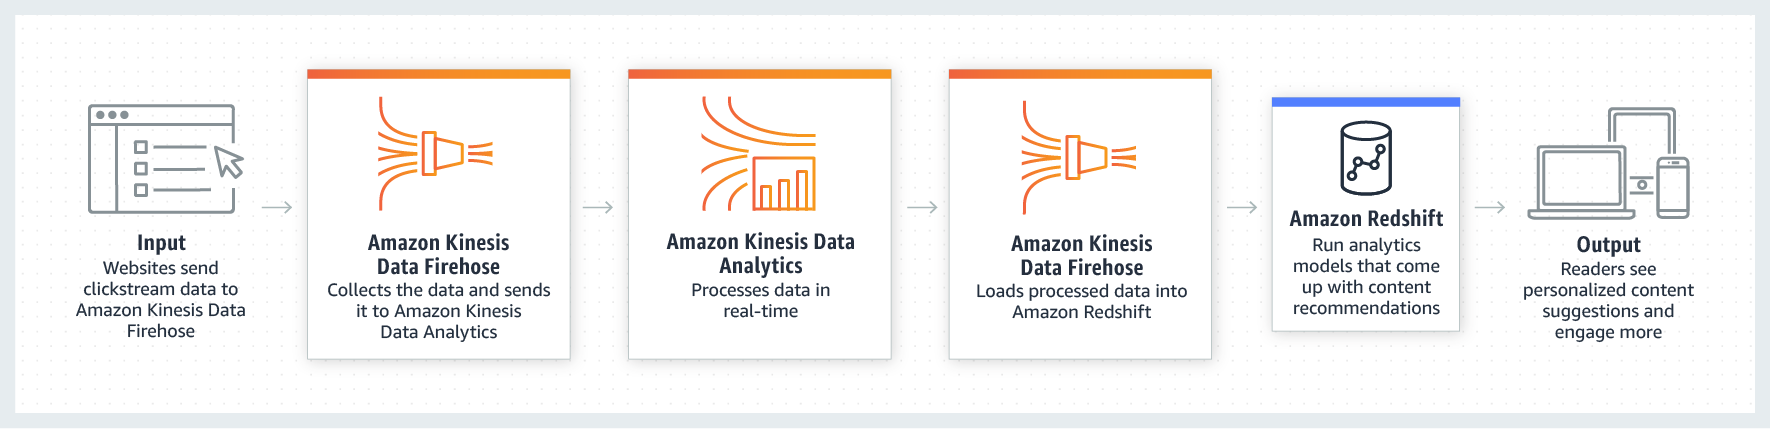 Amazon Kinesis allows you to evolve from batch to real-time analytics